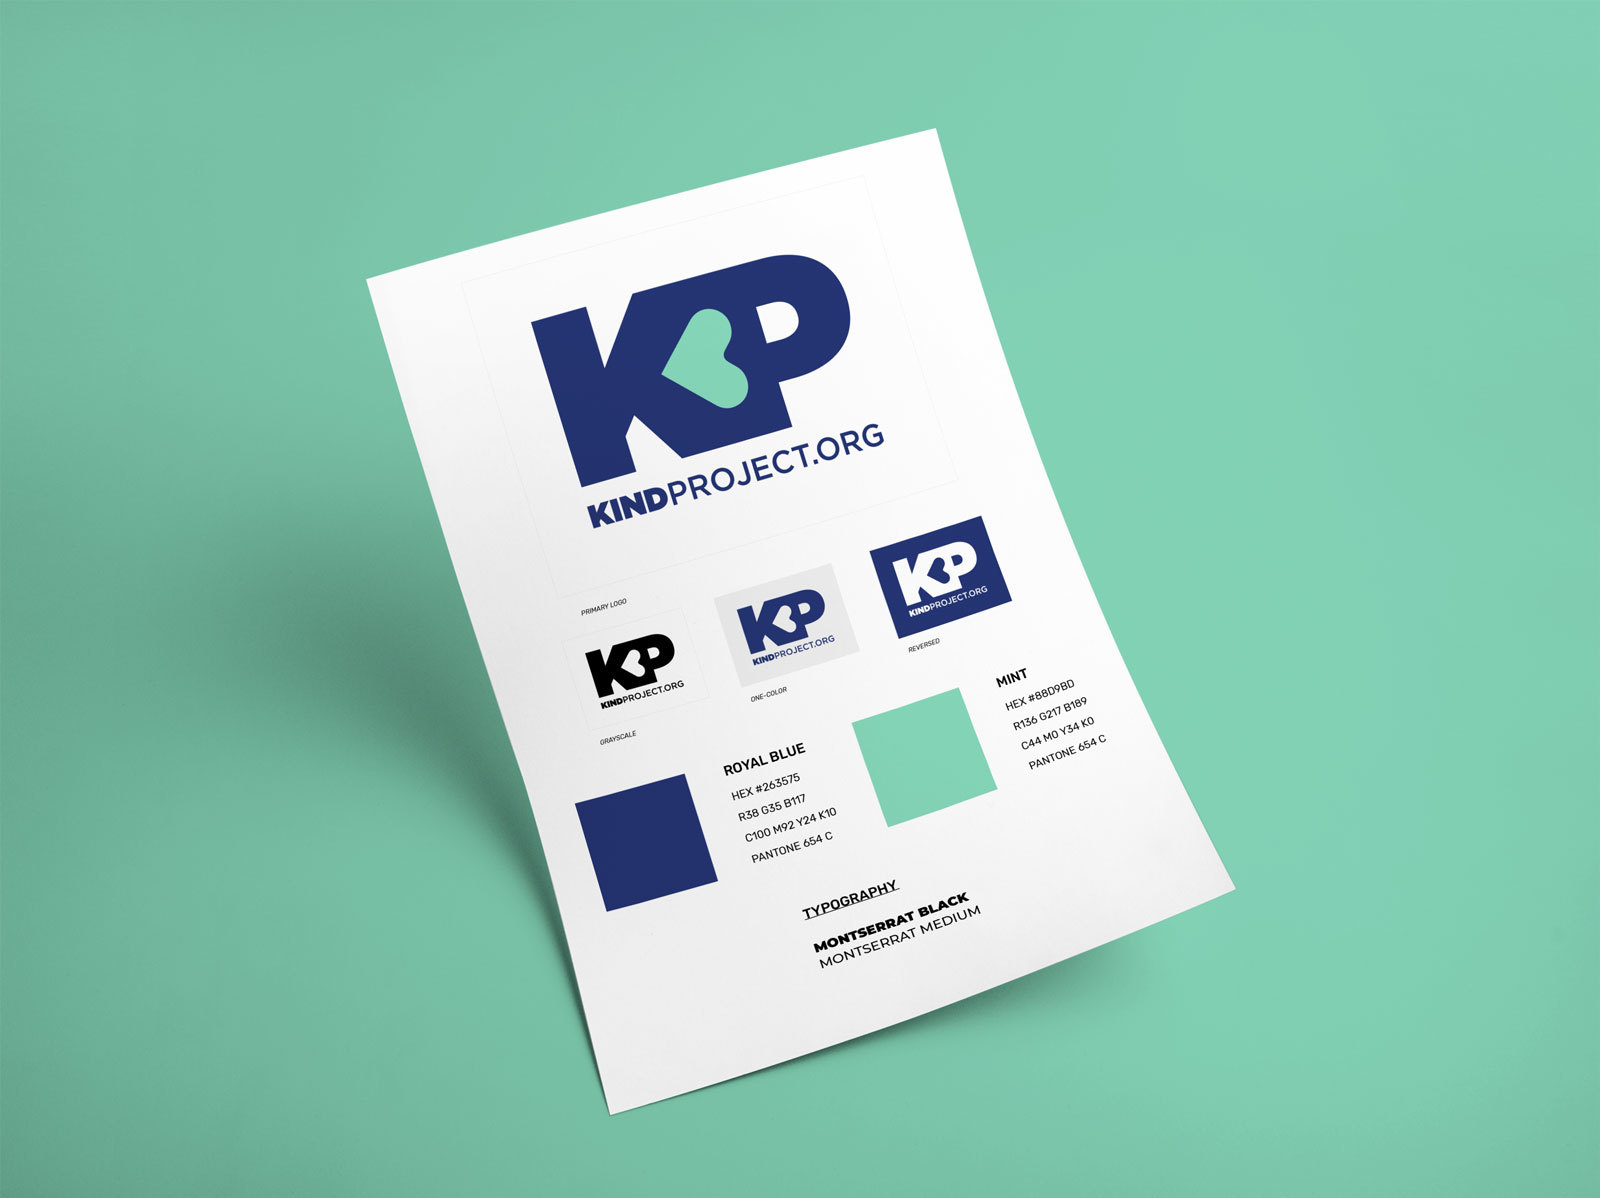 Kind Project - Branding guidelines for logo, typography and colors